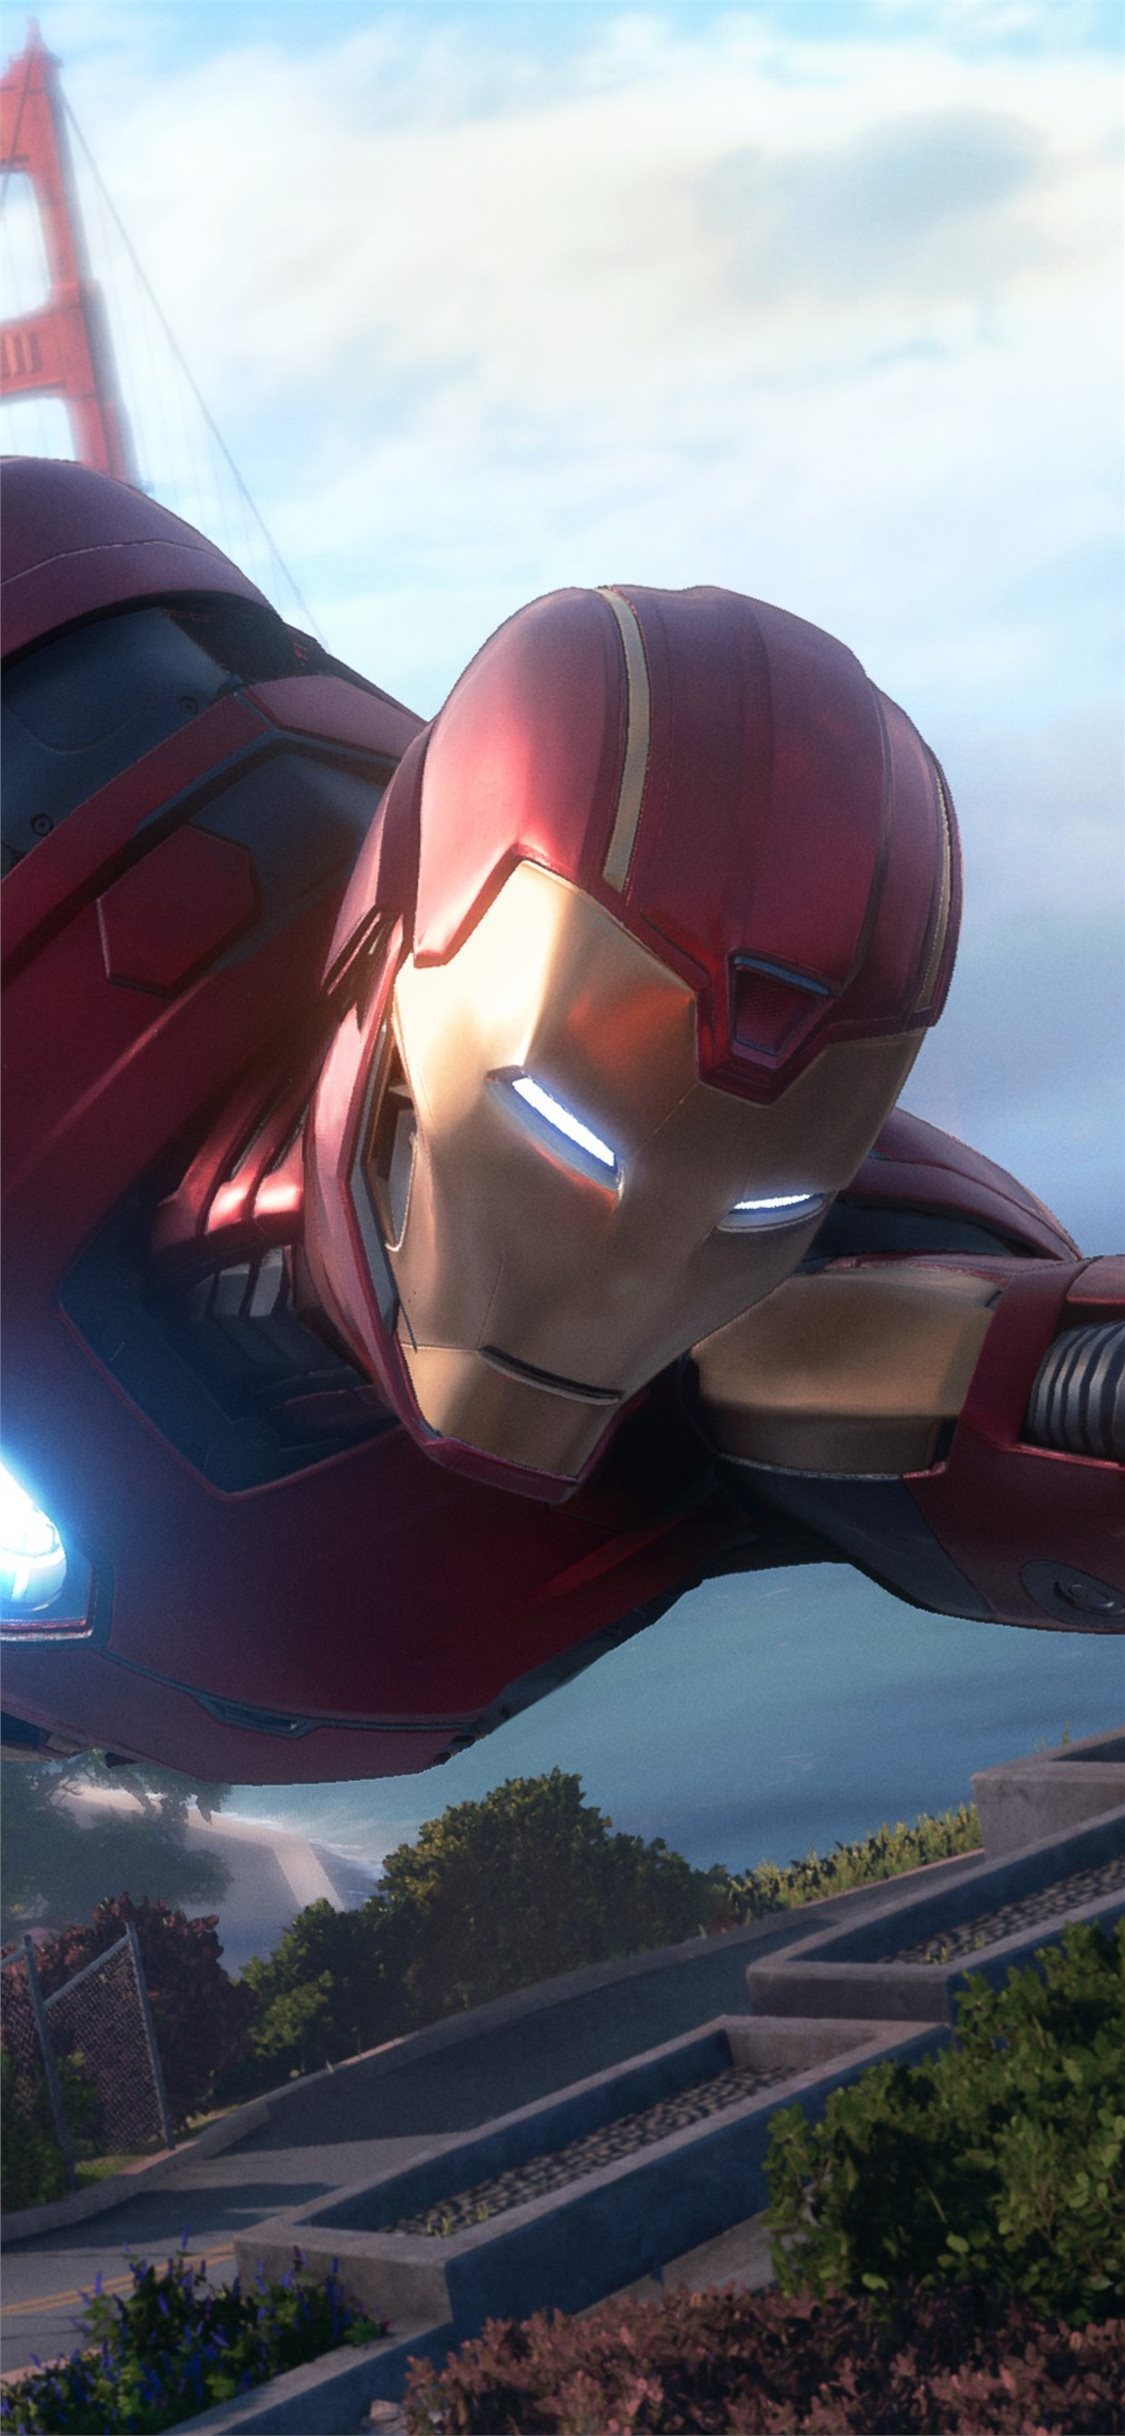 Marvel Avengers Iron Man Iphone X Wallpapers Free Download